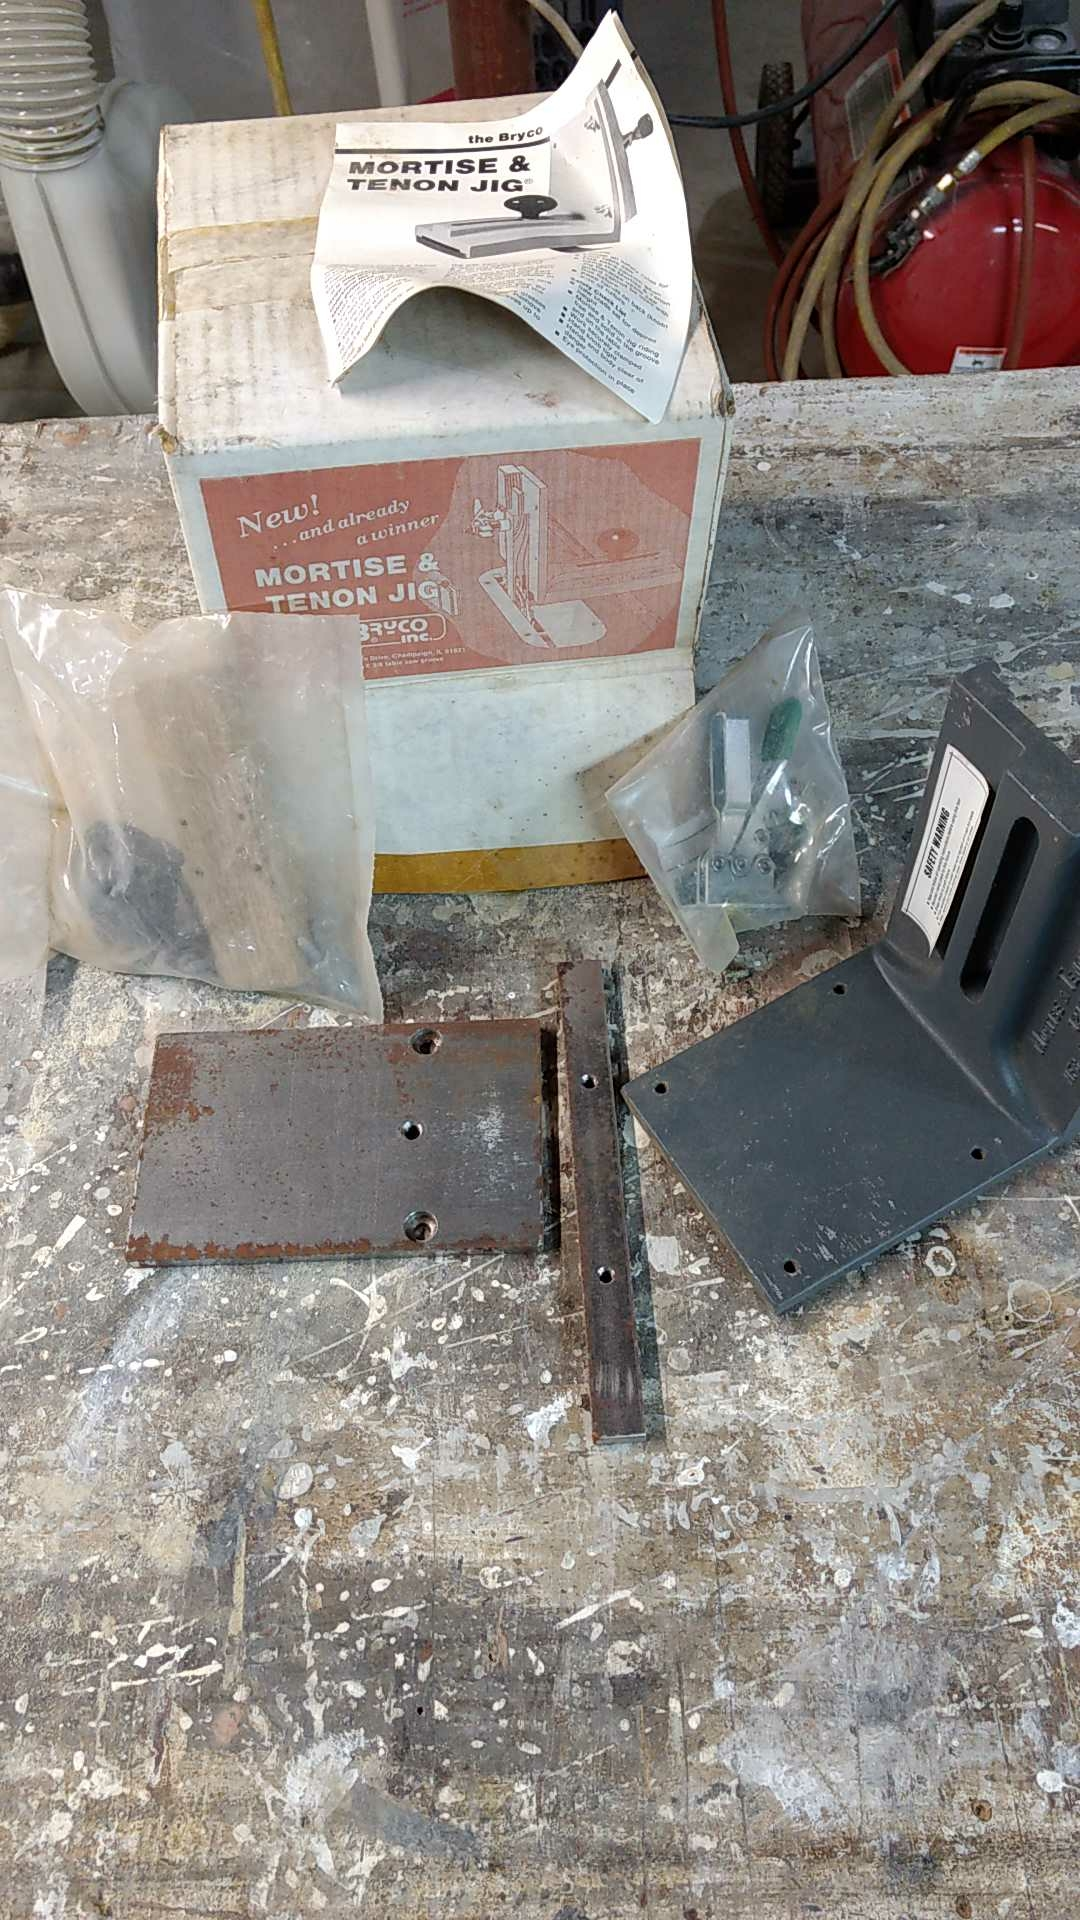 Woodworking Mortise and Tenon jig